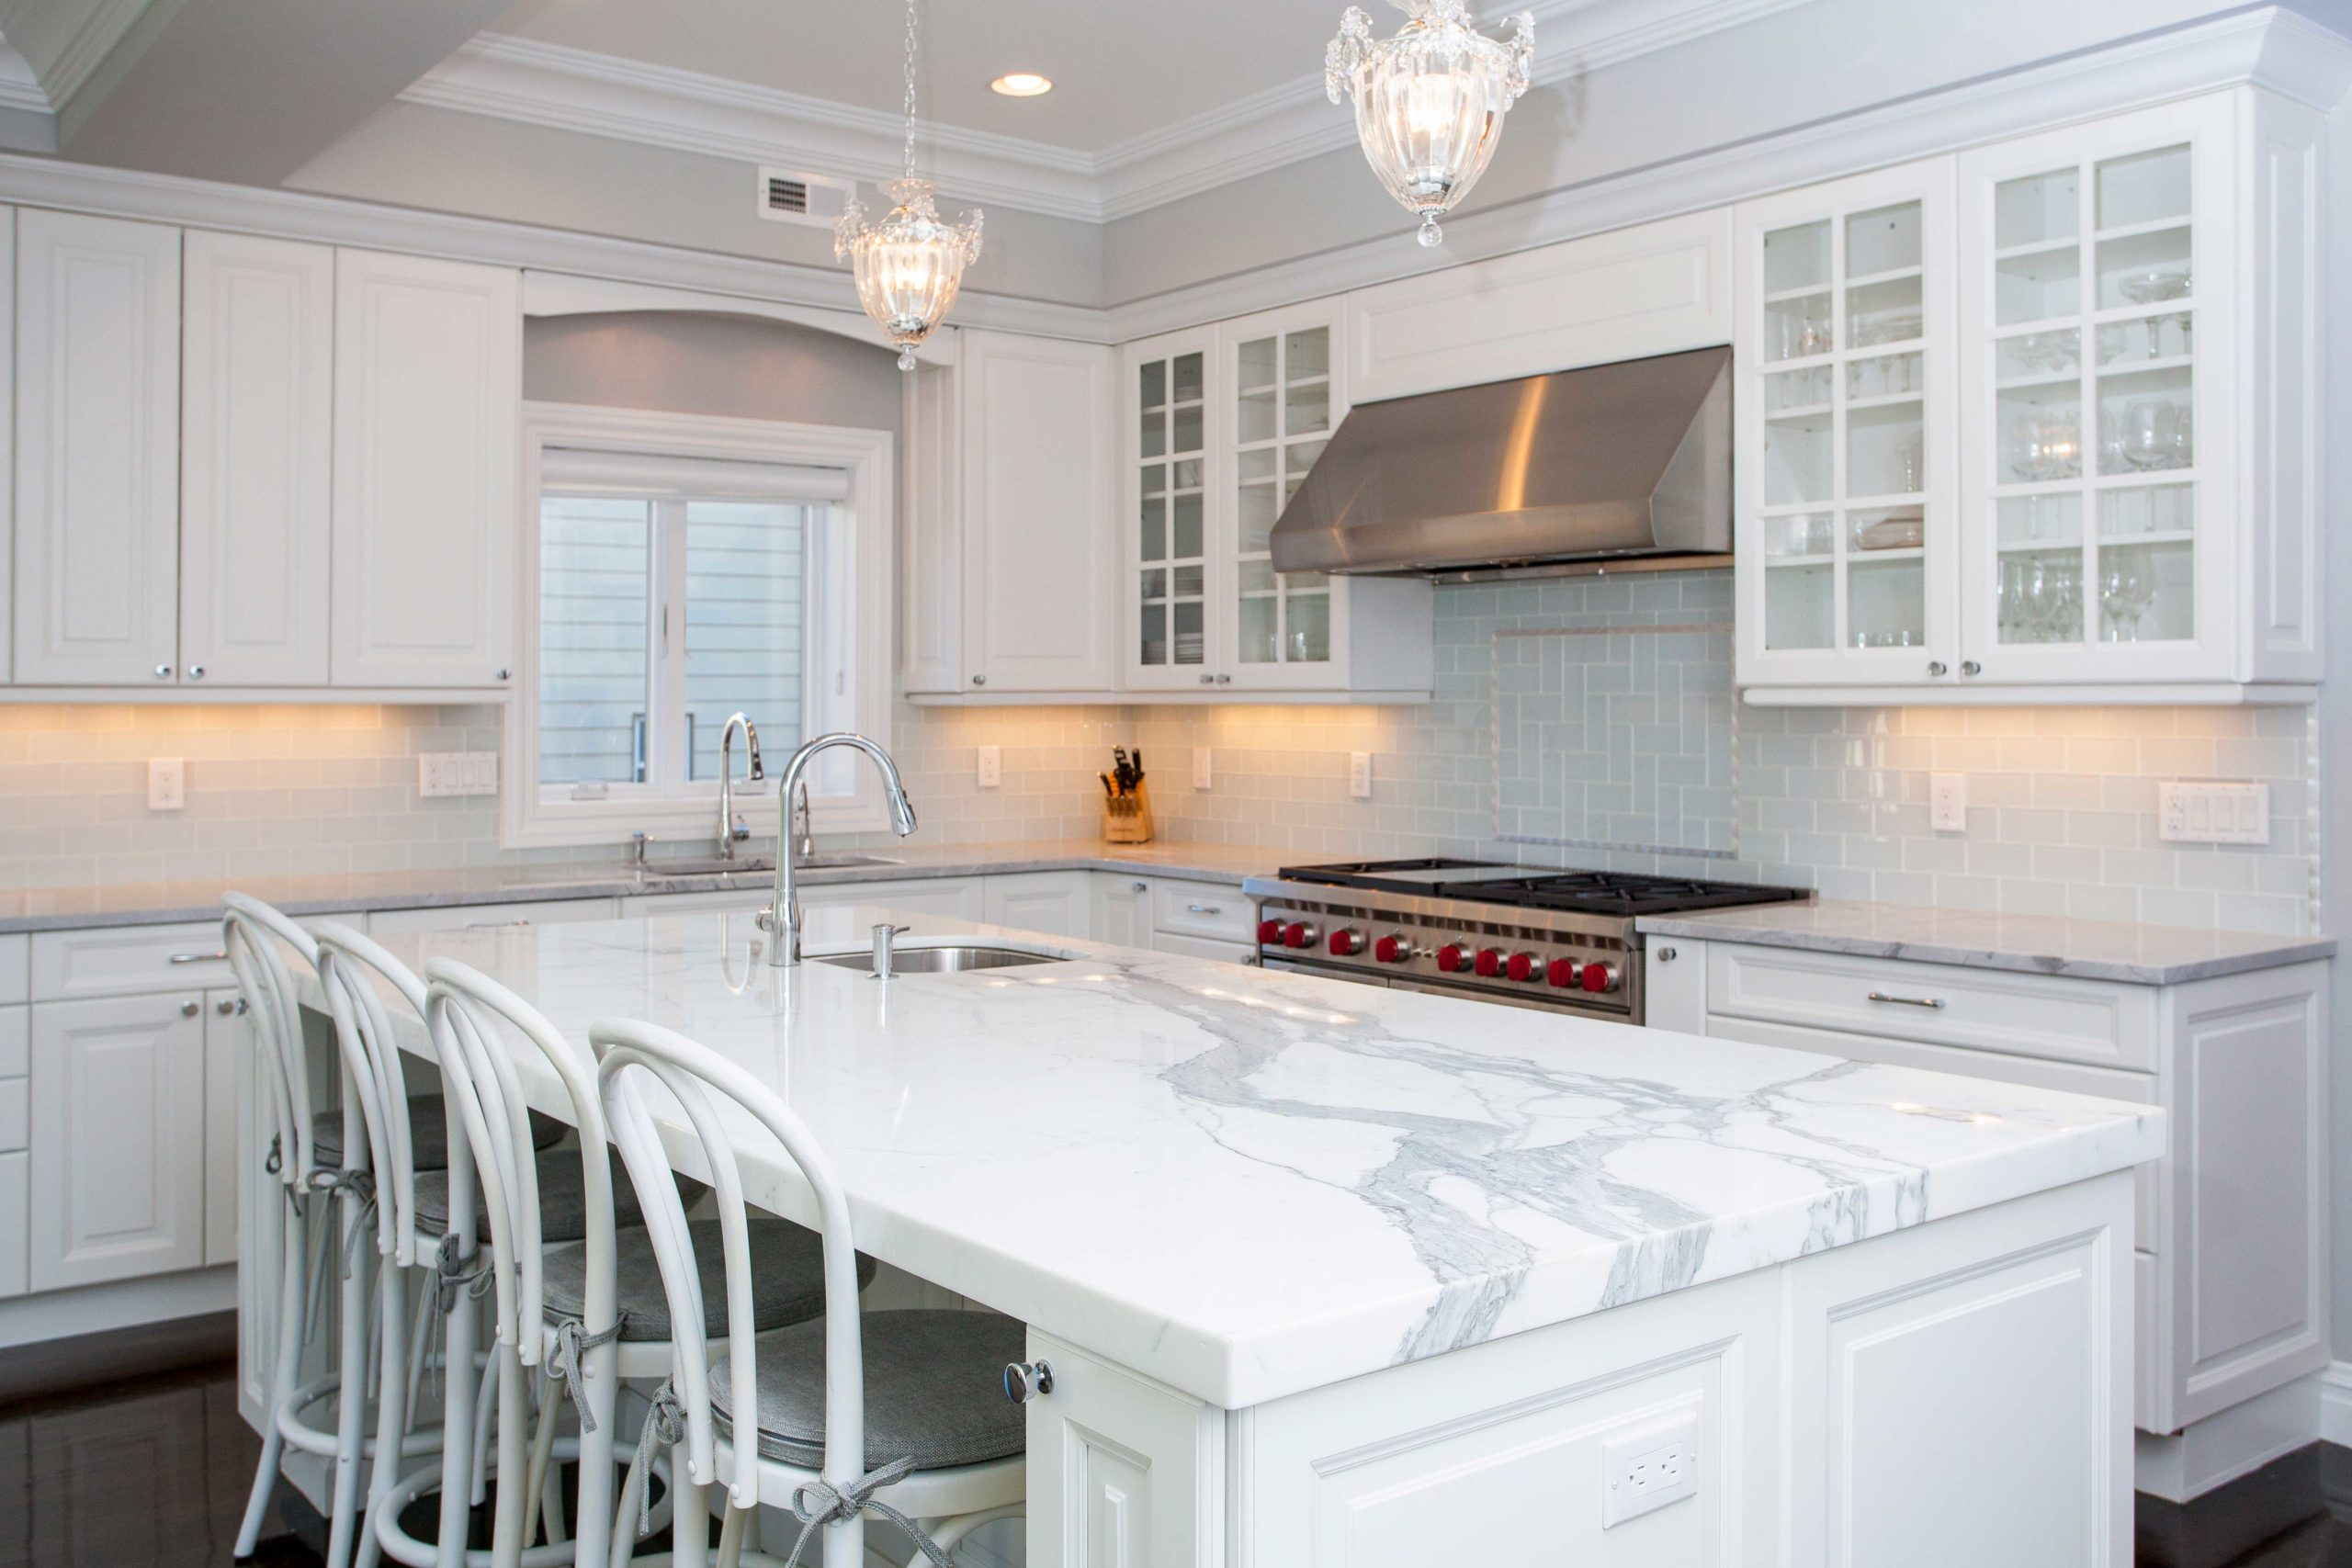 Avoid These When Designing Your Kitchen